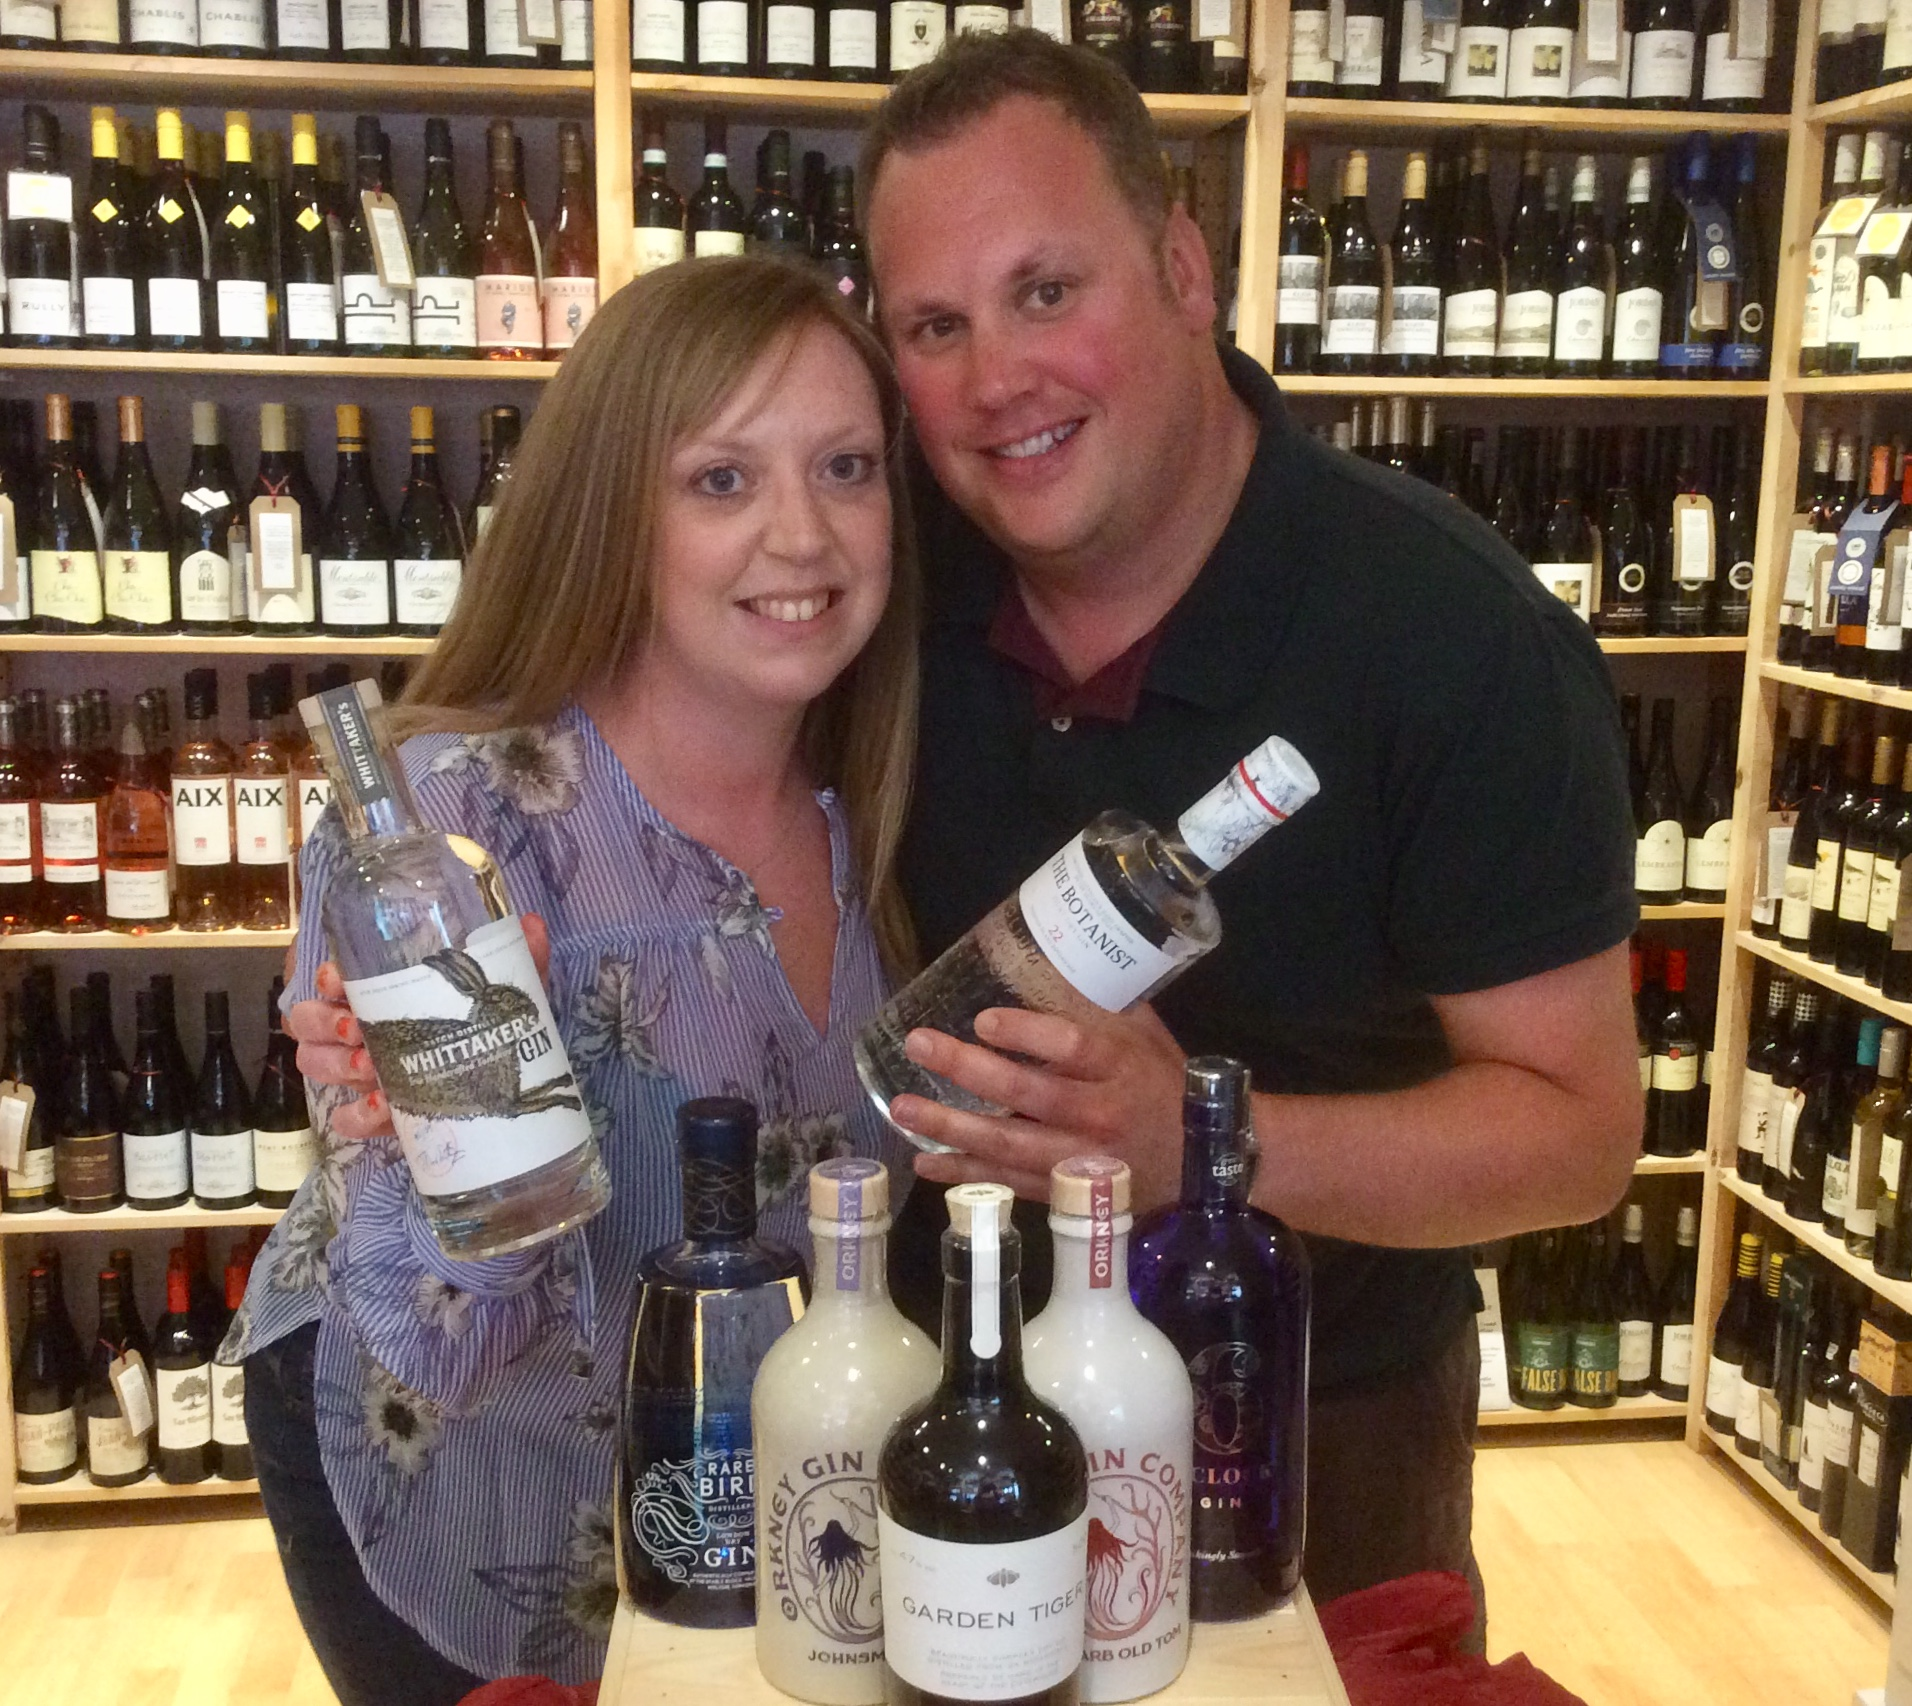 Jayne and Mal Potter, the organisers of Ginilicious and owners of Helmsley Wines